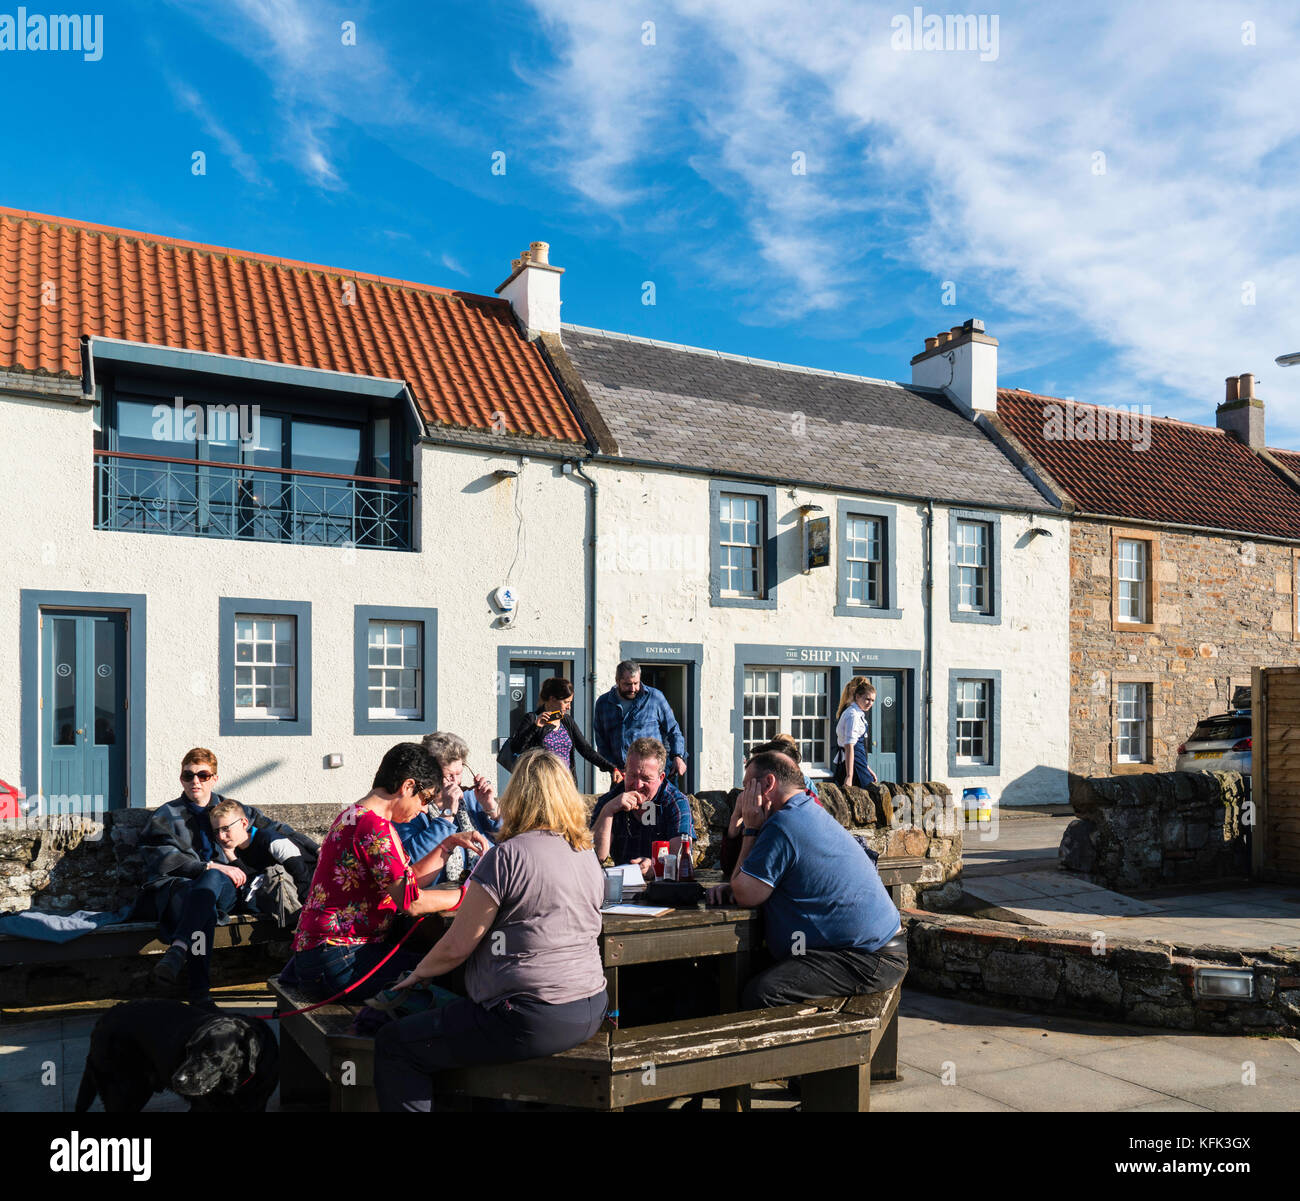 View of Ship Inn bar and restaurant in Elie in East Neuk of Fife in Scotland, United Kingdom - Stock Image